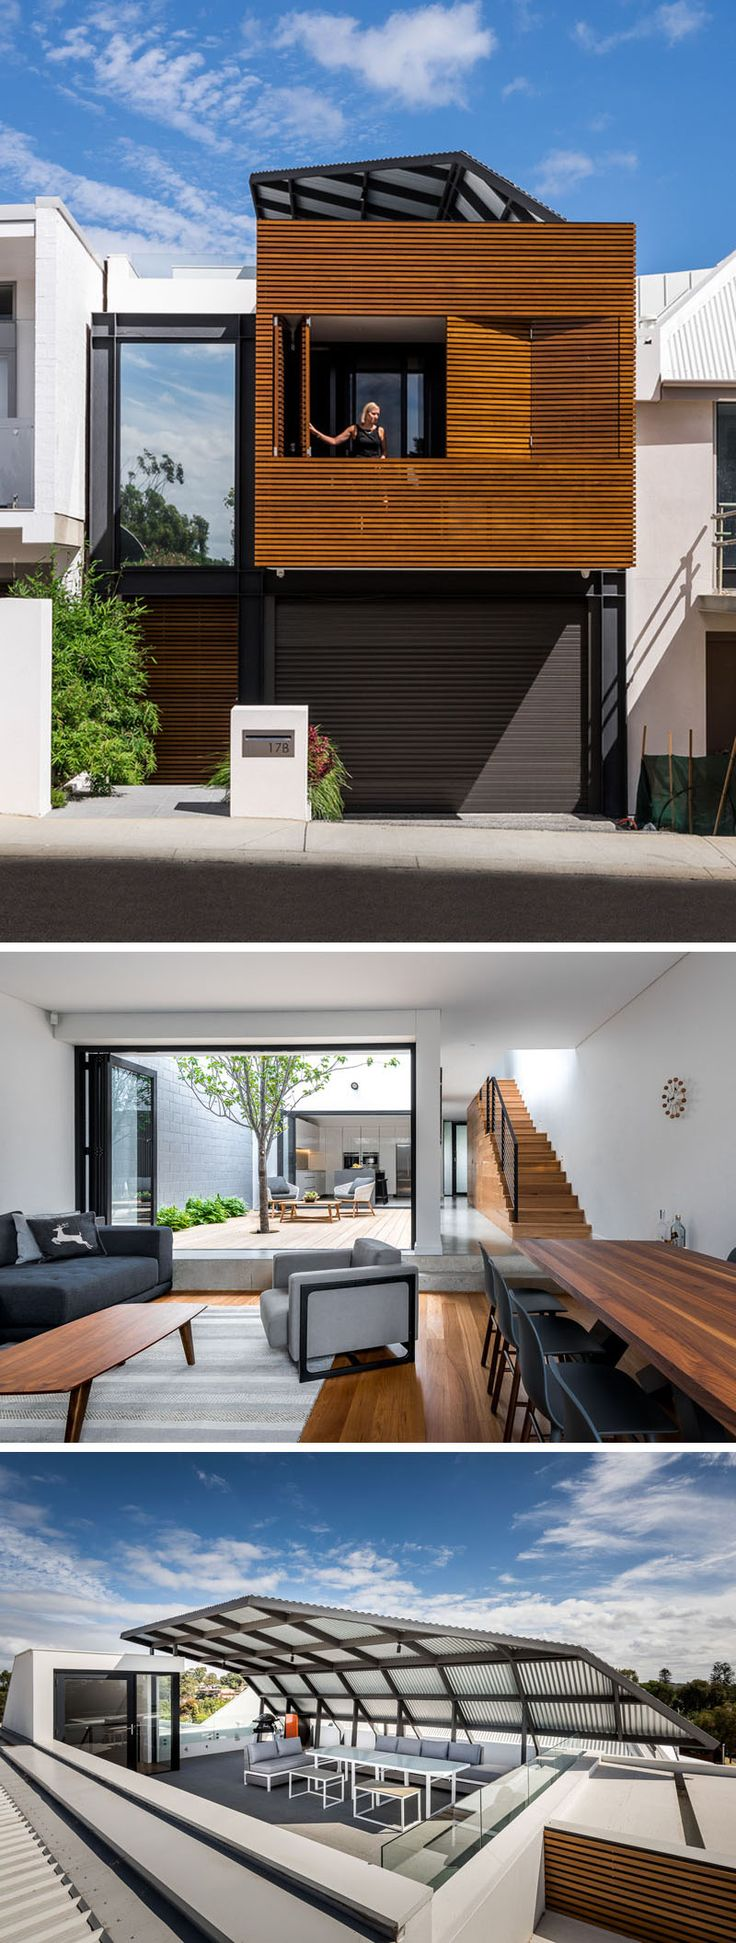 Celebrate Australia Day With These 14 Contemporary Australian Houses | This Perth house was opens up on the inside to a private inner courtyard, and the rooftop has been set up perfectly for entertaining and enjoying the views.